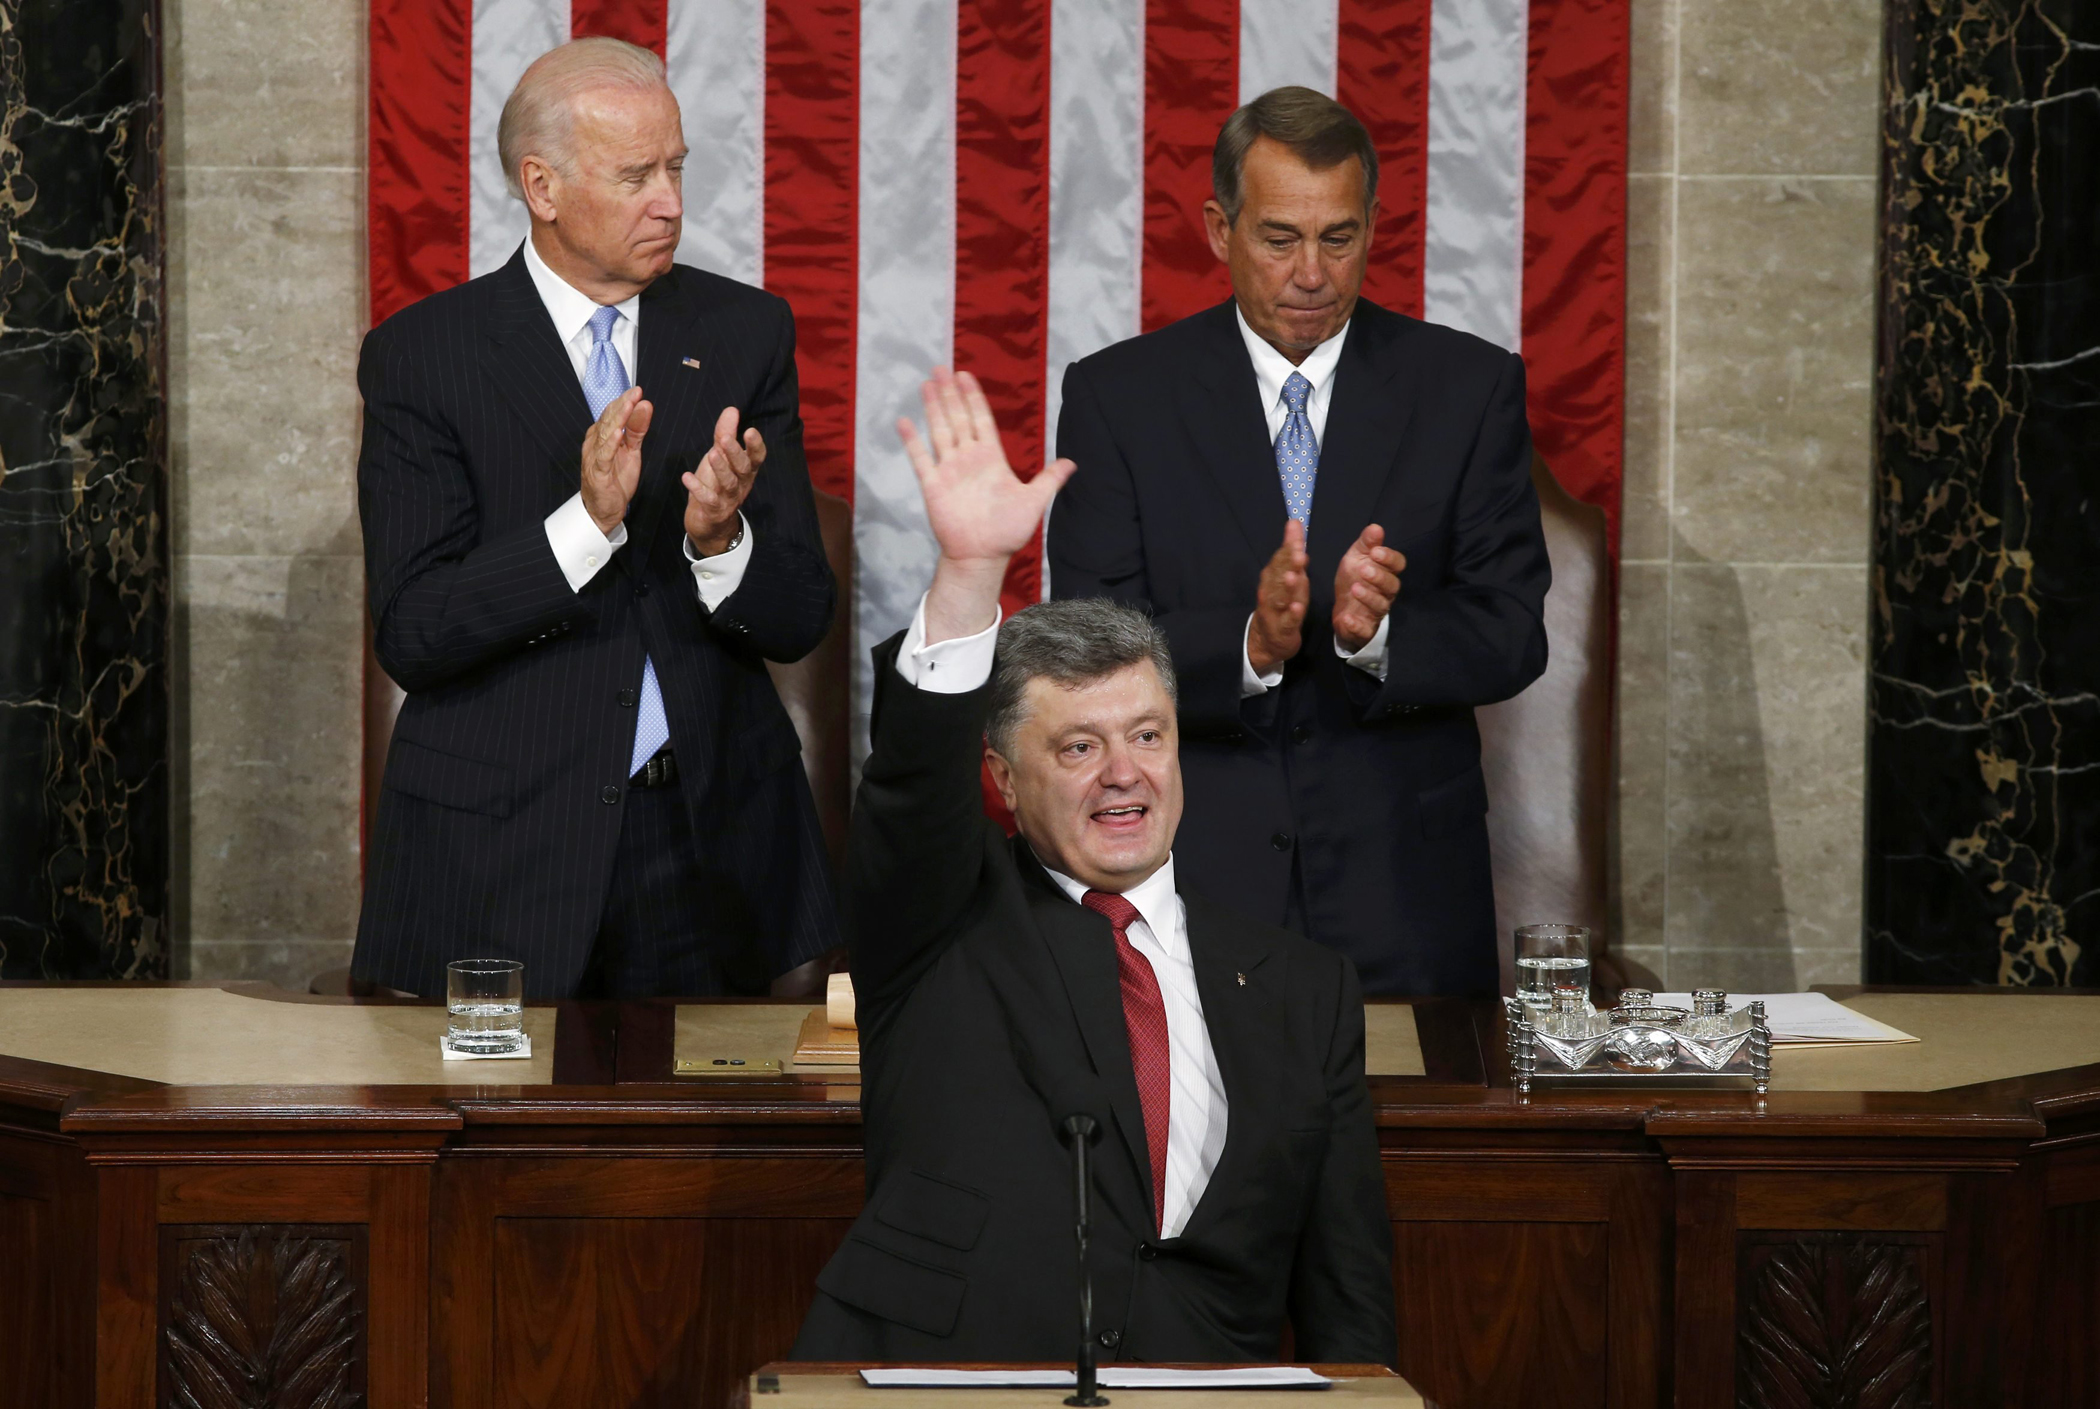 Ukraine President Petro Poroshenko acknowledges applause after addressing a joint meeting of Congress in the U.S. Capitol in Washington, Sept. 18, 2014.